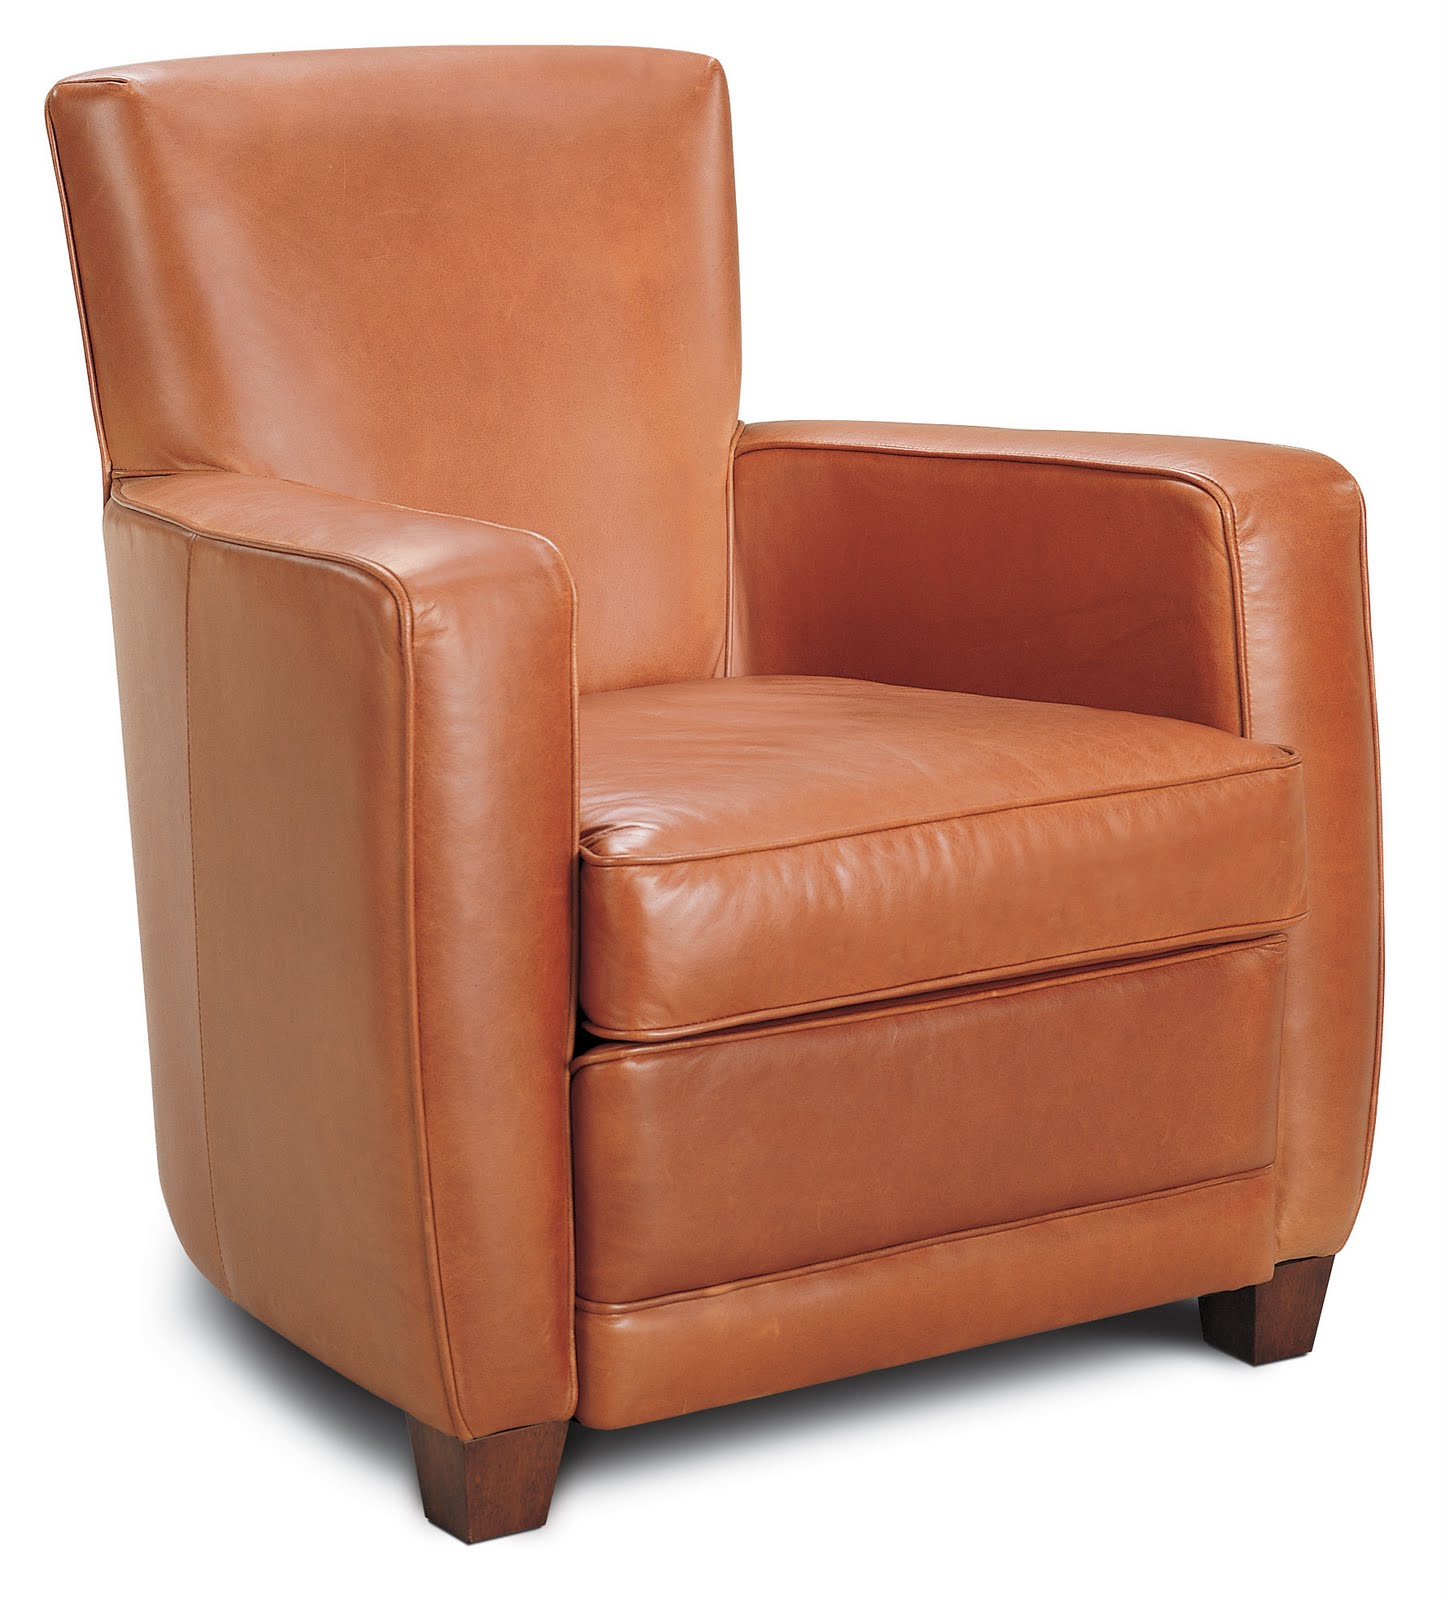 What Can You Use To Clean A Leather Couch Home Improvement